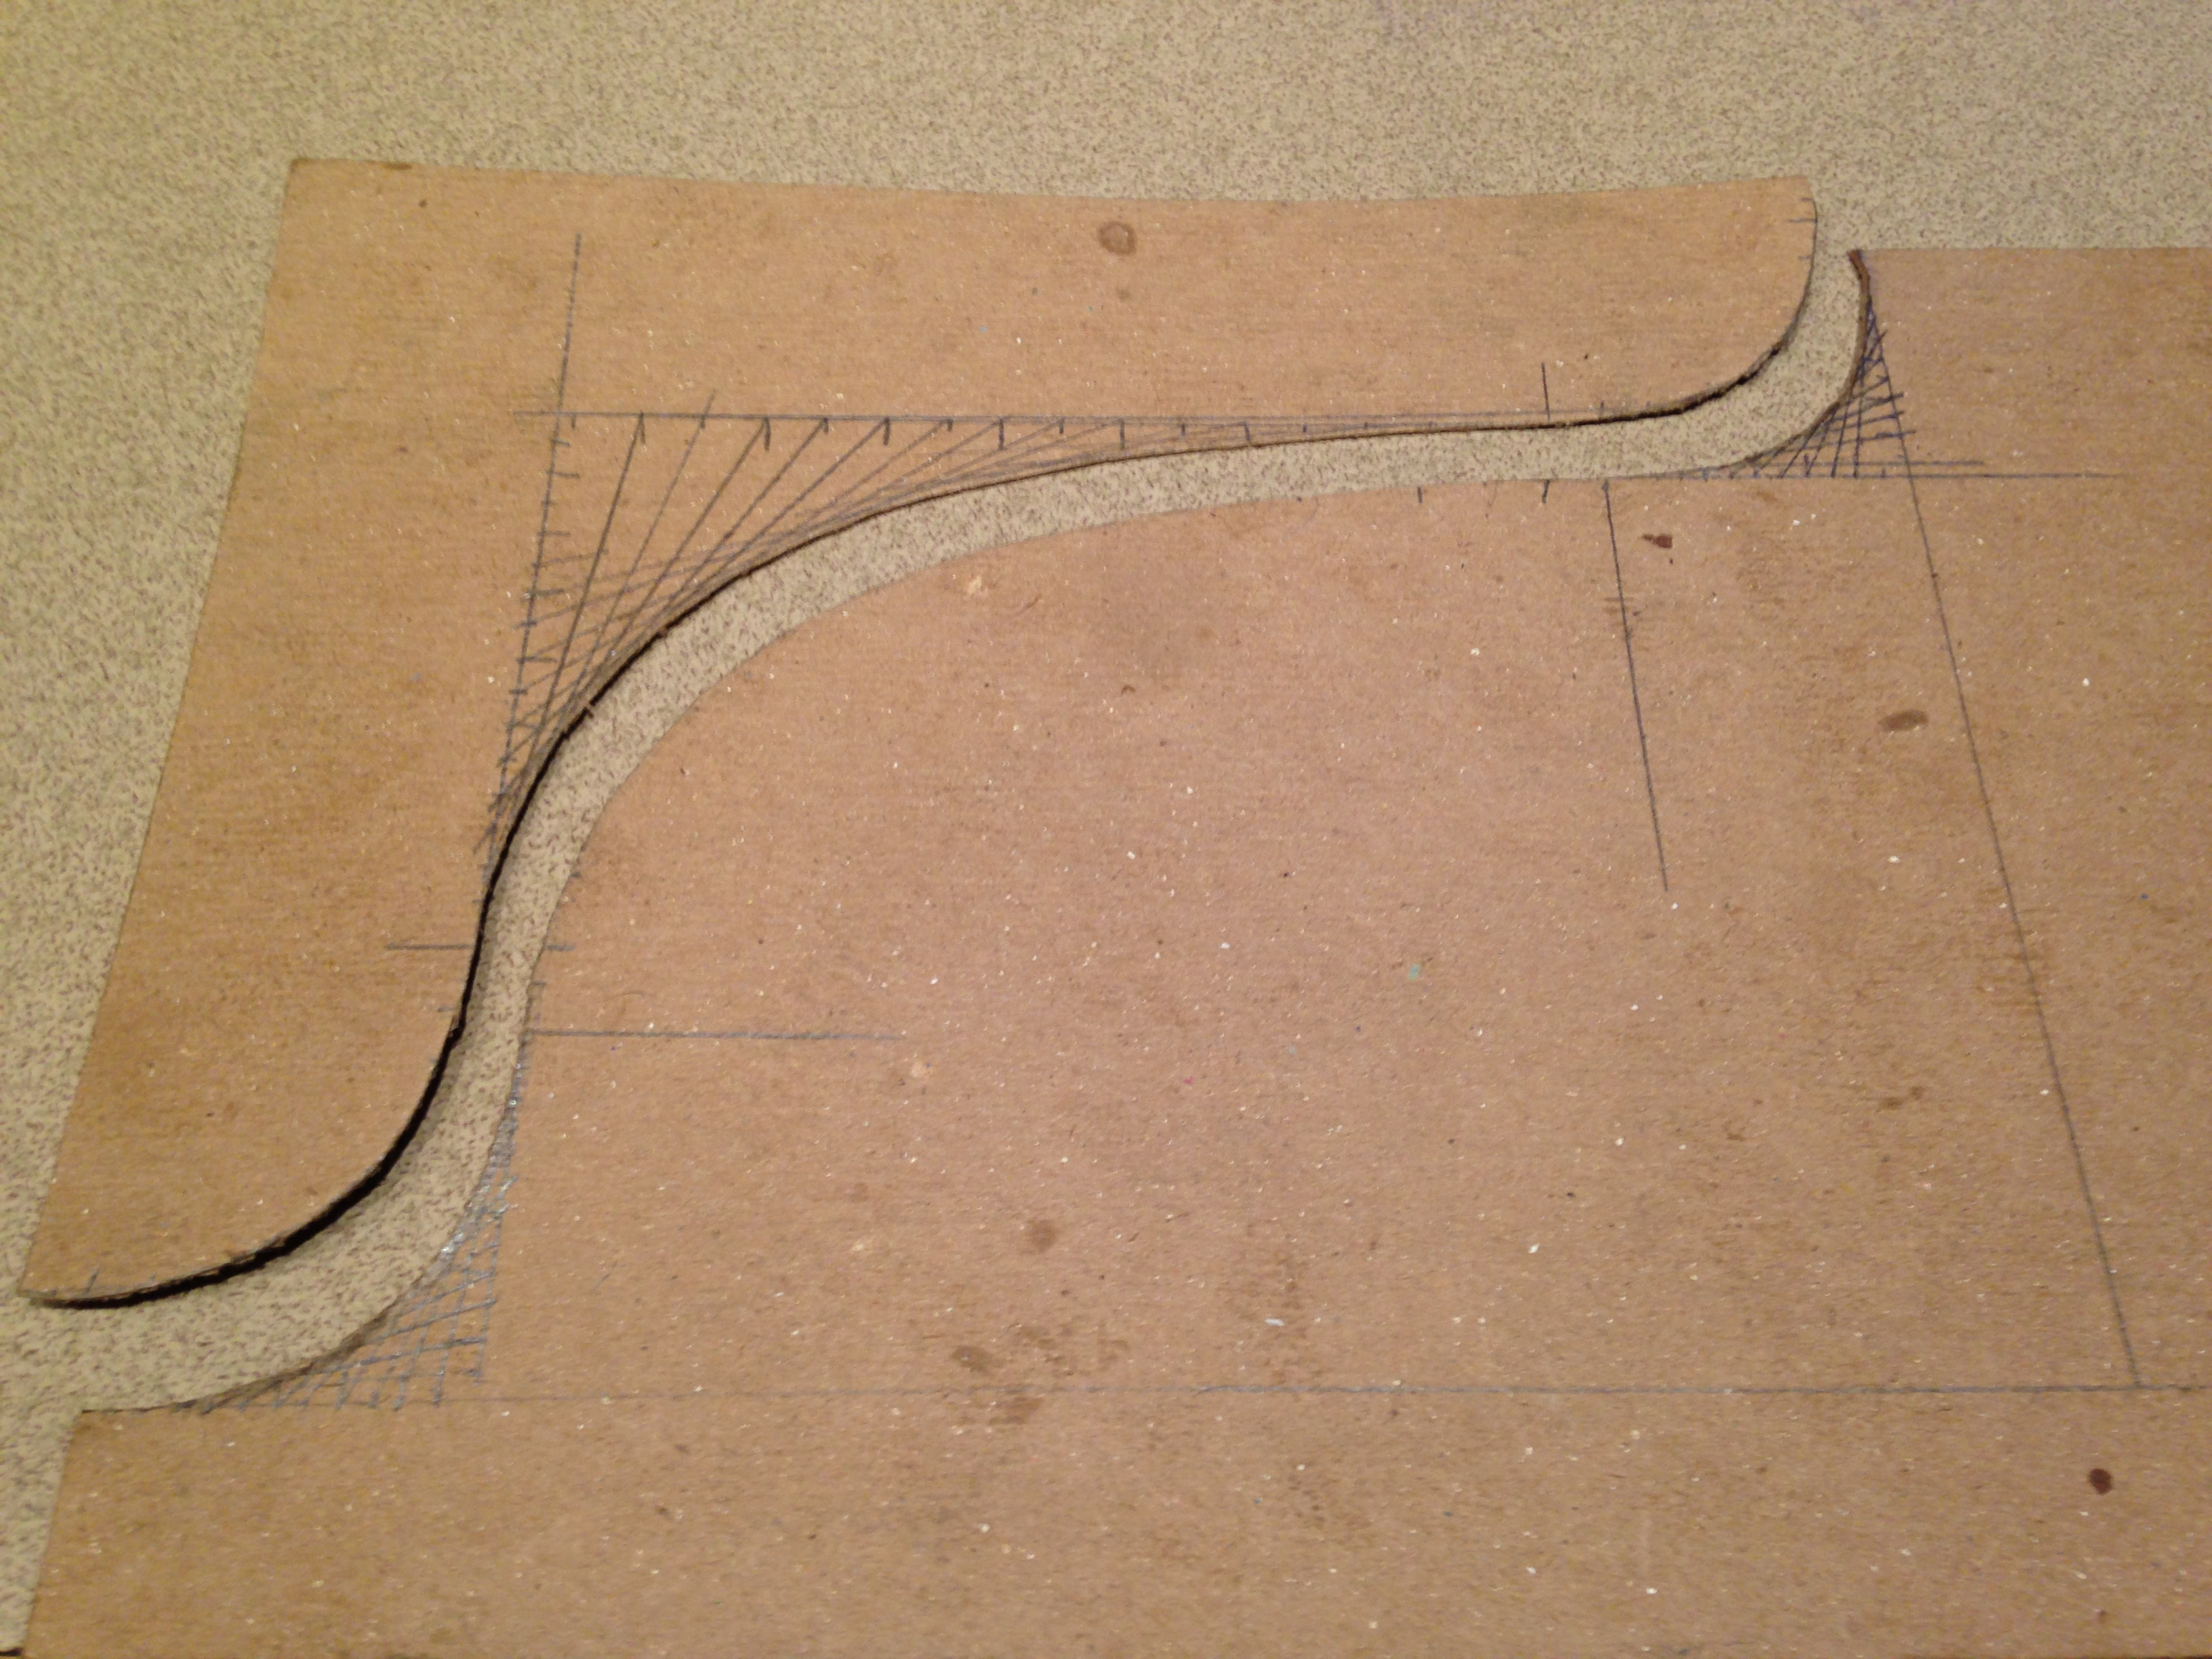 Construct Curves to Smoothly Connect Lines at Any Angle